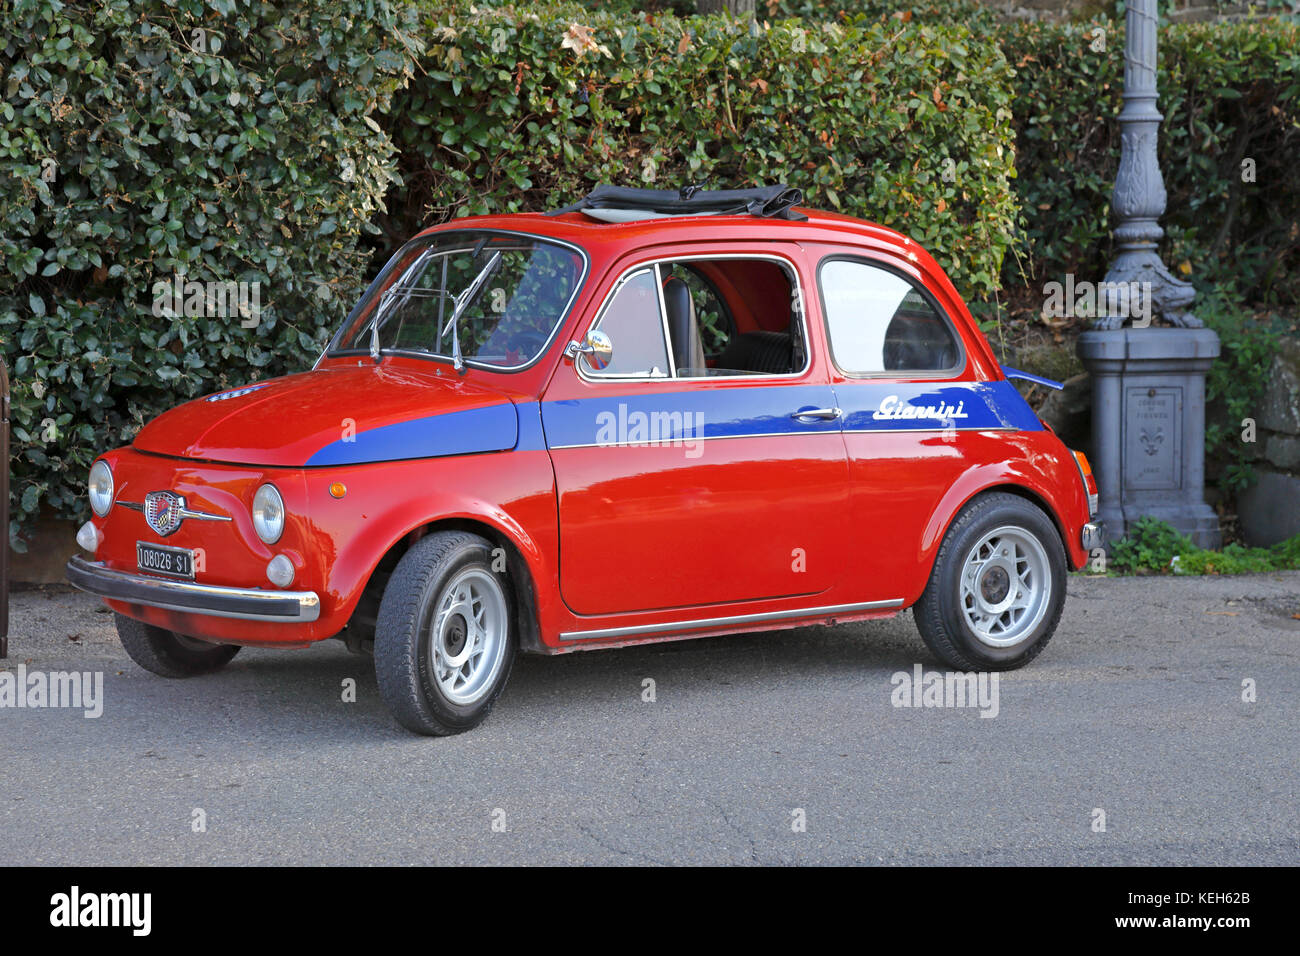 A Classic Vintage 1970 Fiat 500 Giannini Florence Tuscany Italy